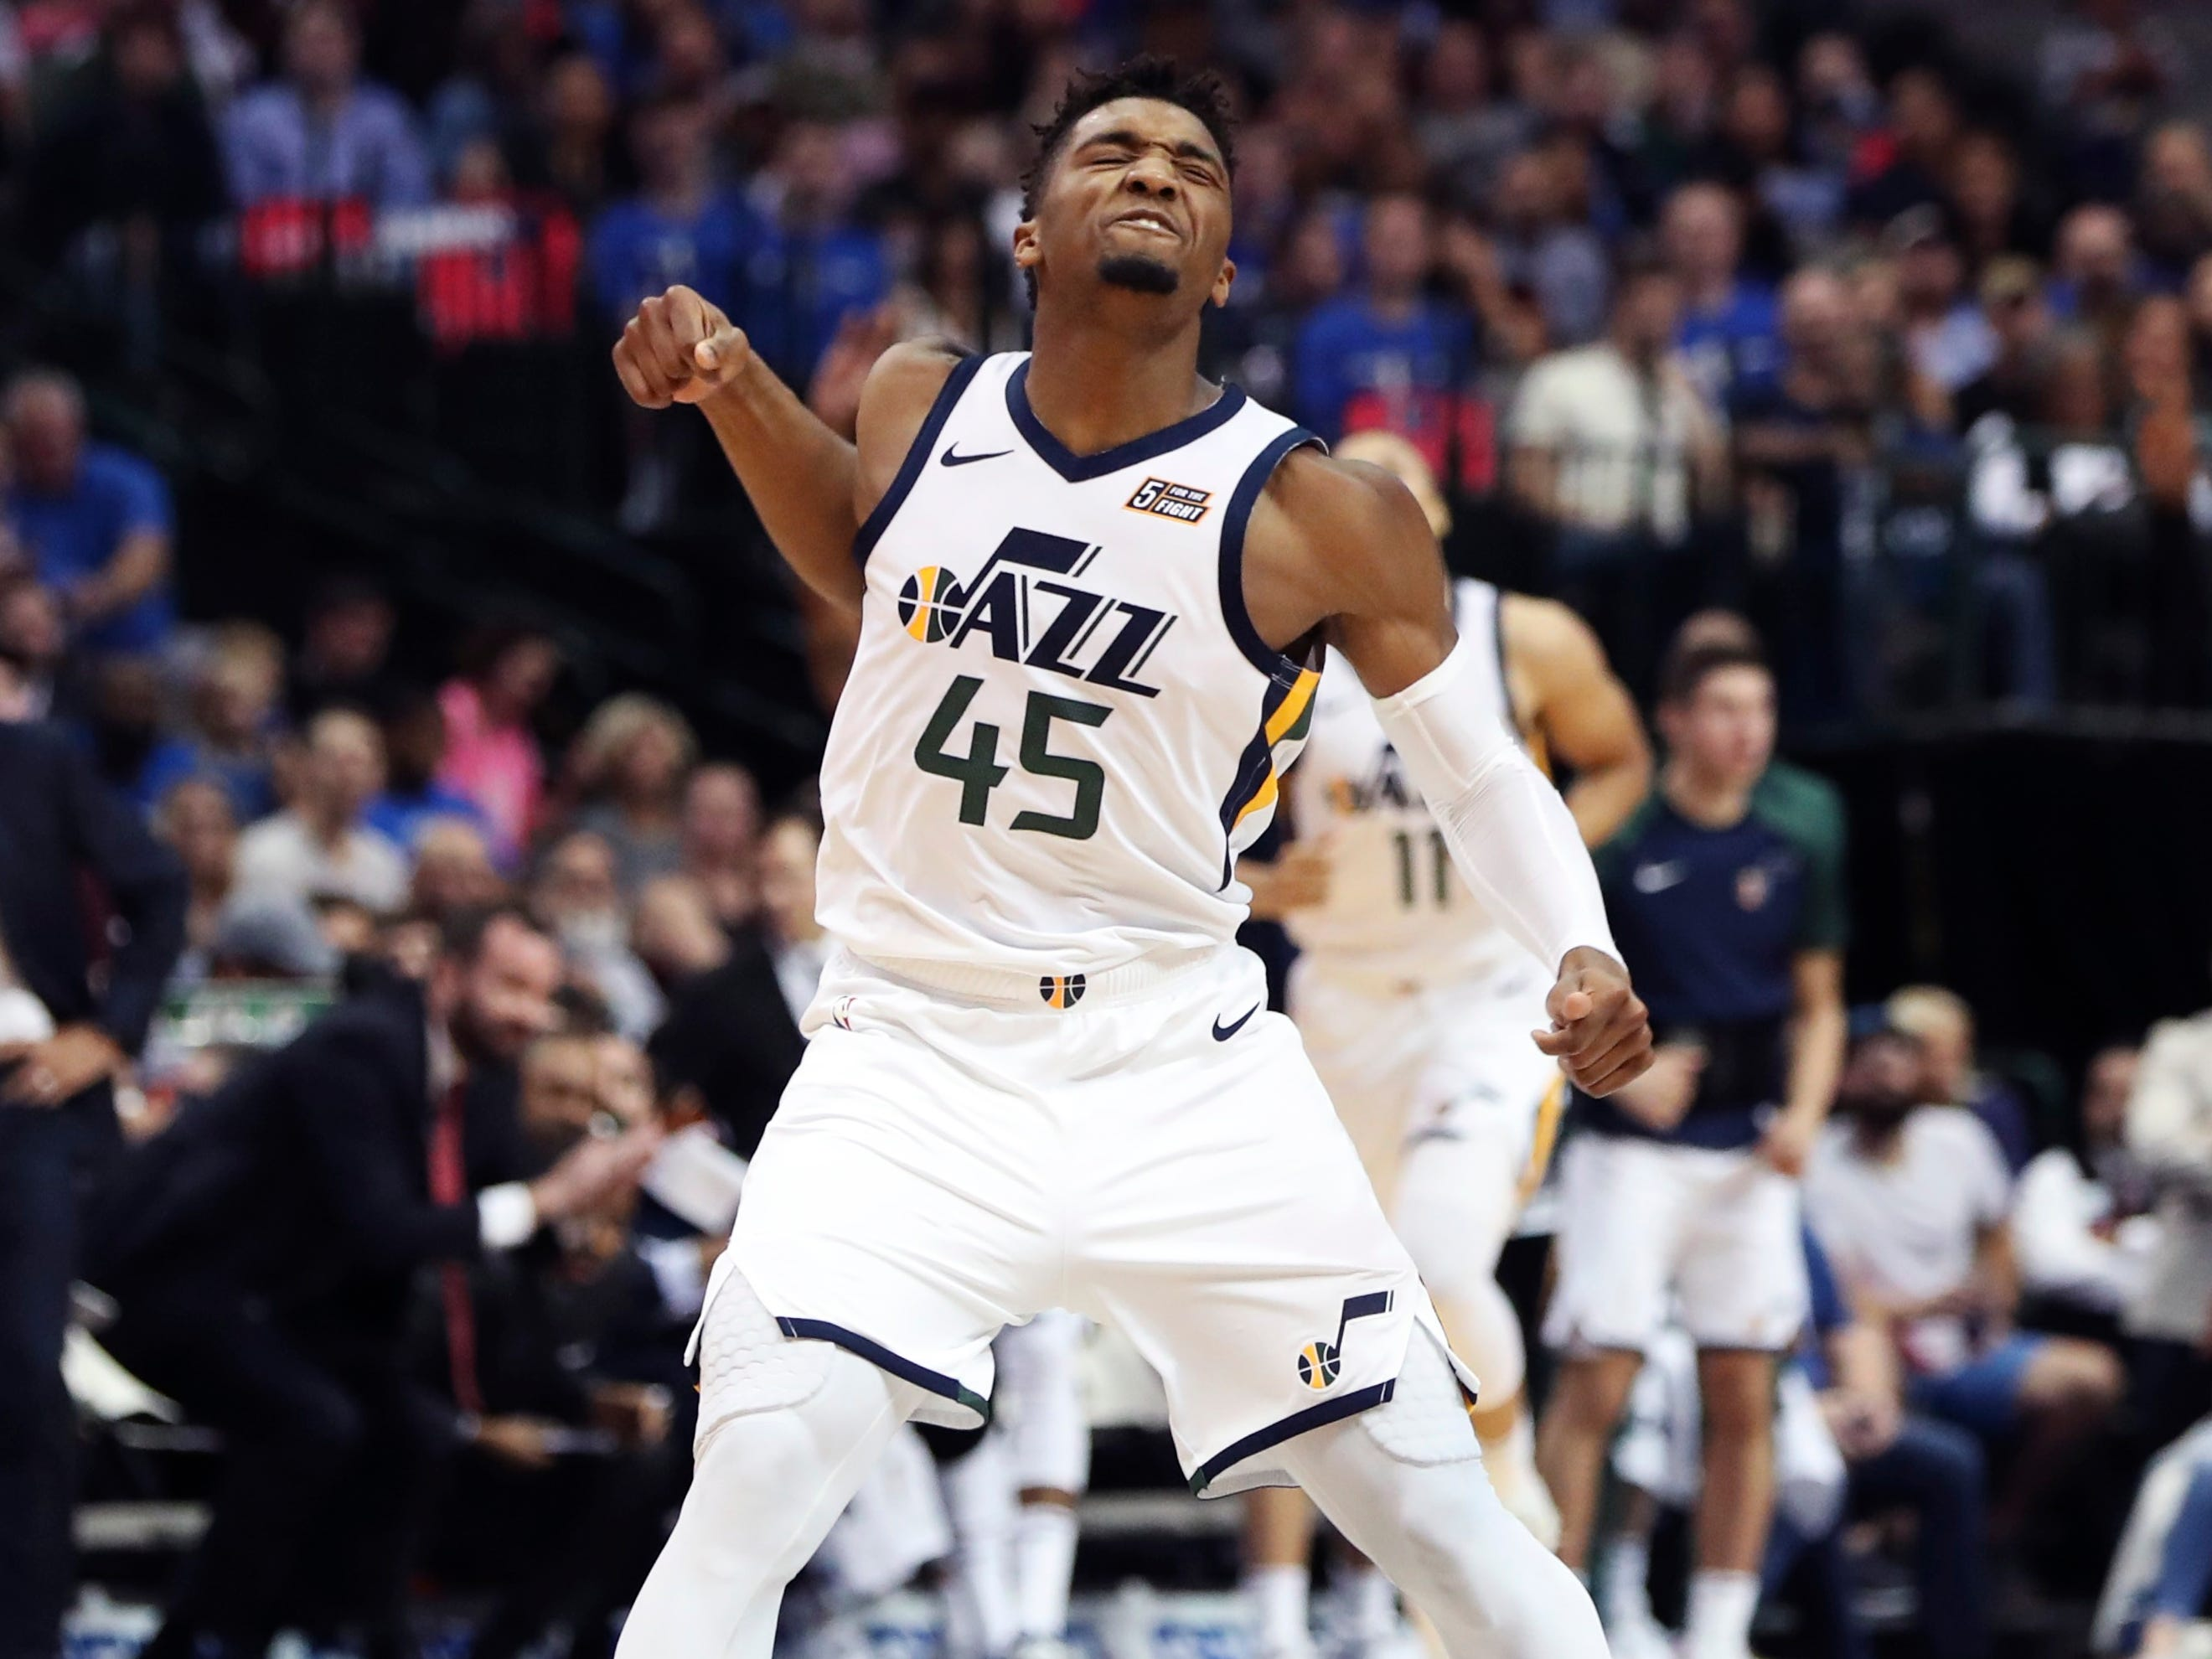 Oct. 28: Jazz guard Donovan Mitchell was fired up after a big second-half bucket against the Mavericks in Dallas.